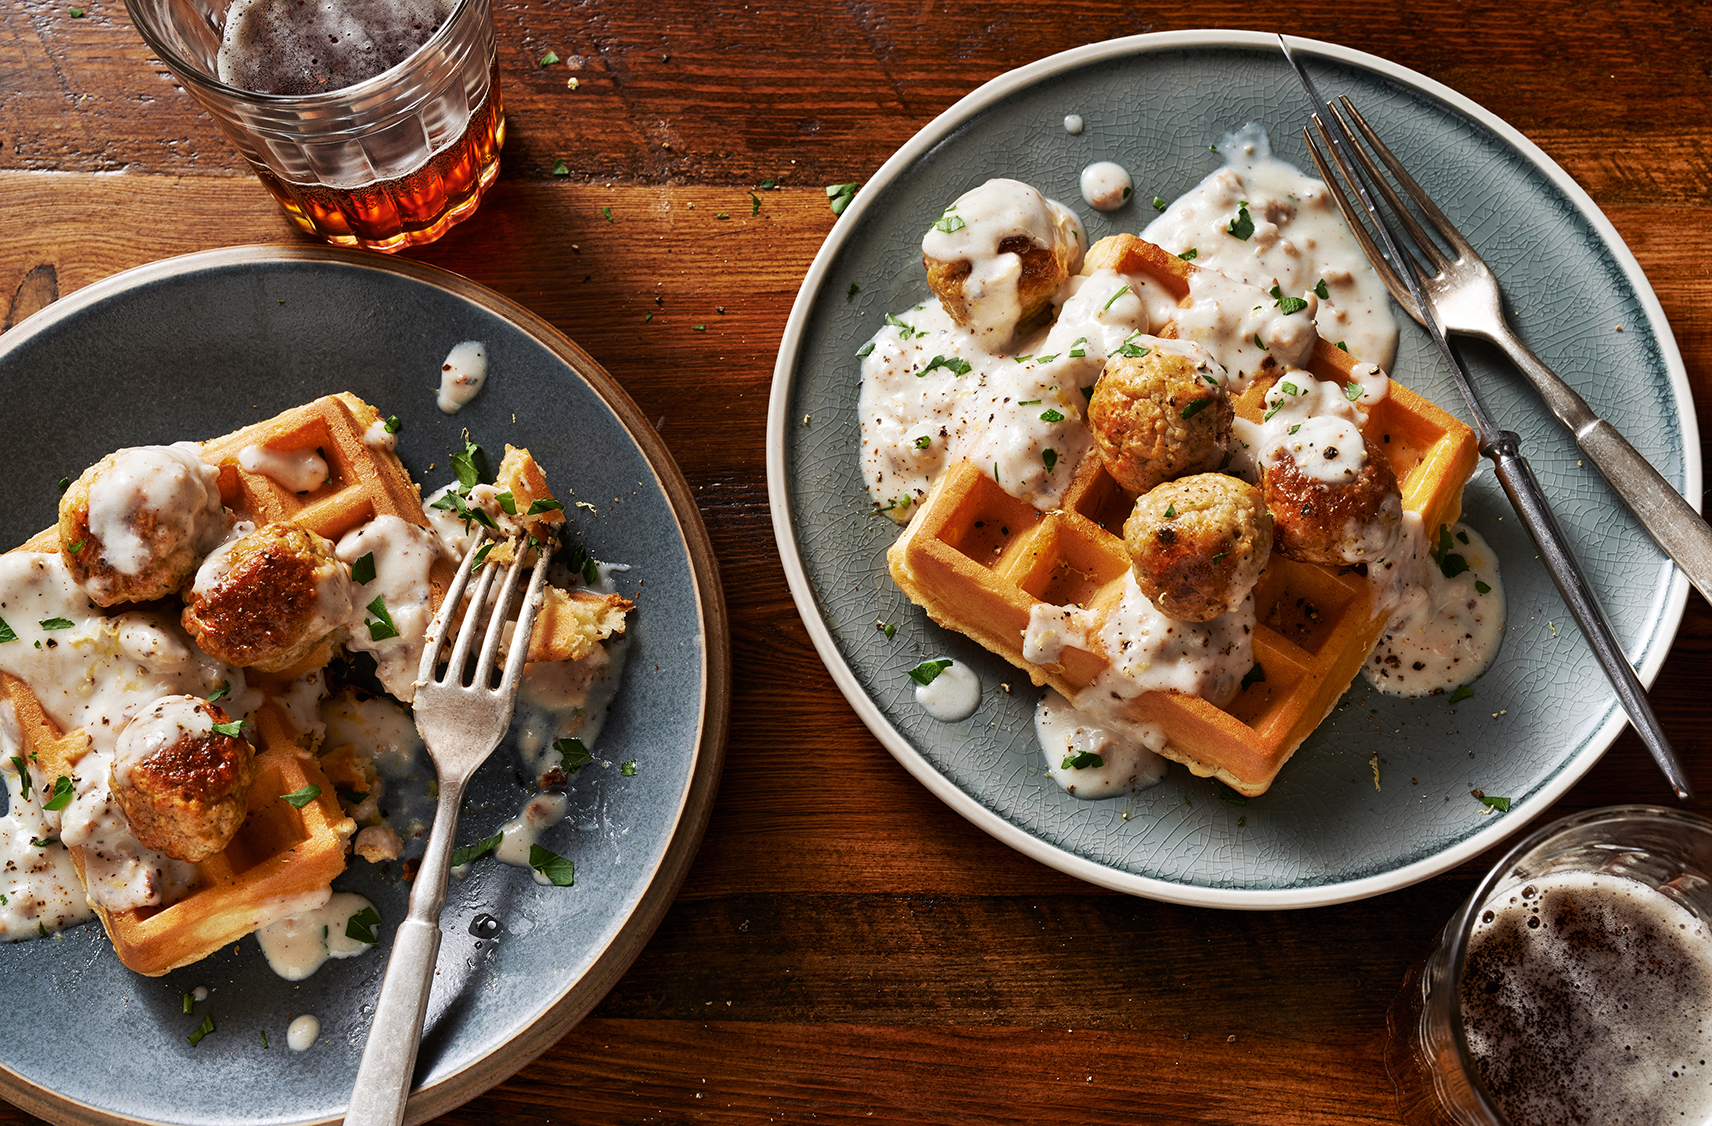 Two plates of waffles topped with chicken meatballs and gravy